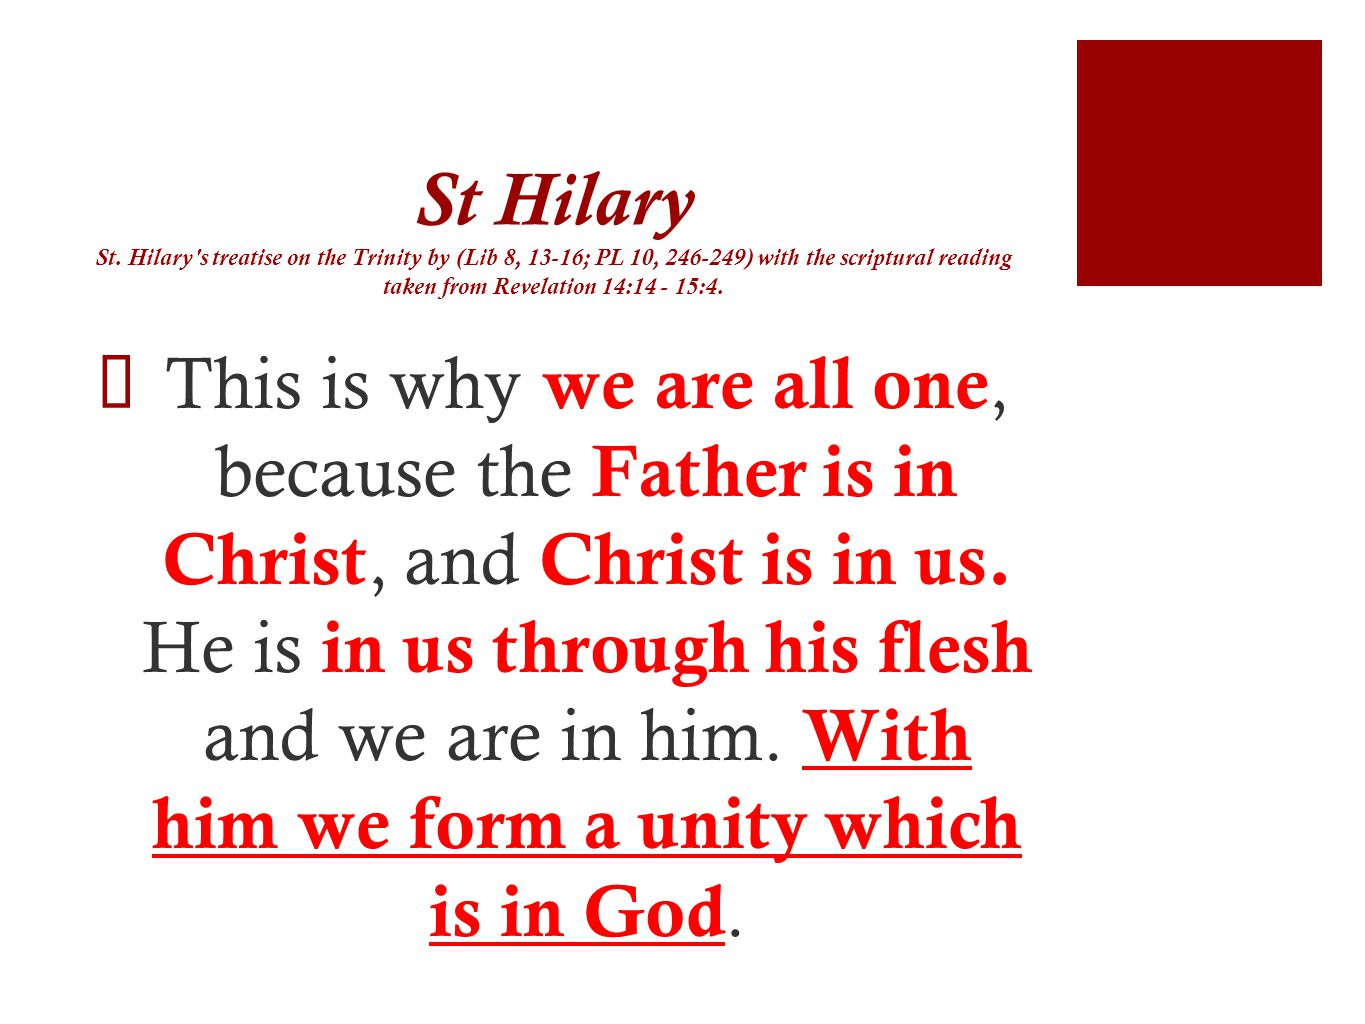 St Hilary St. Hilary s treatise on the Trinity by (Lib 8, 13-16; PL 10, ) with the scriptural reading taken from Revelation 14: :4.